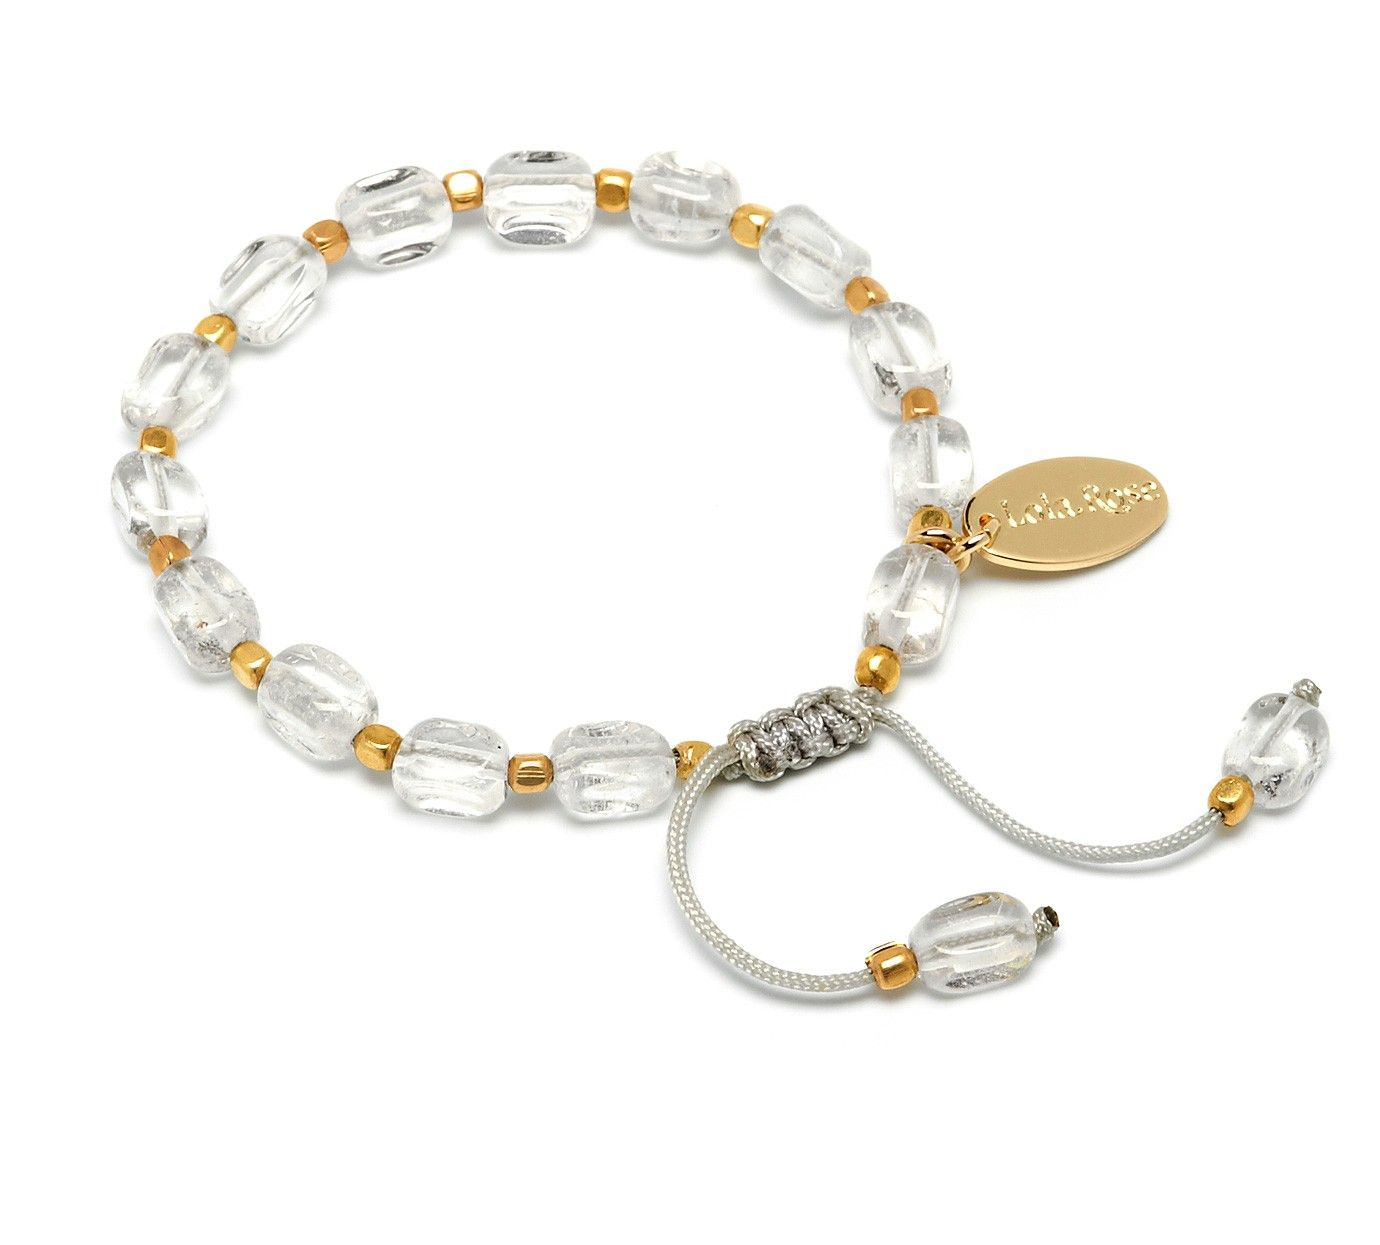 Erskine Bracelet. Bead Bracelets | LolaRose.co.uk - £28 (December 2014 sale - £19.60)